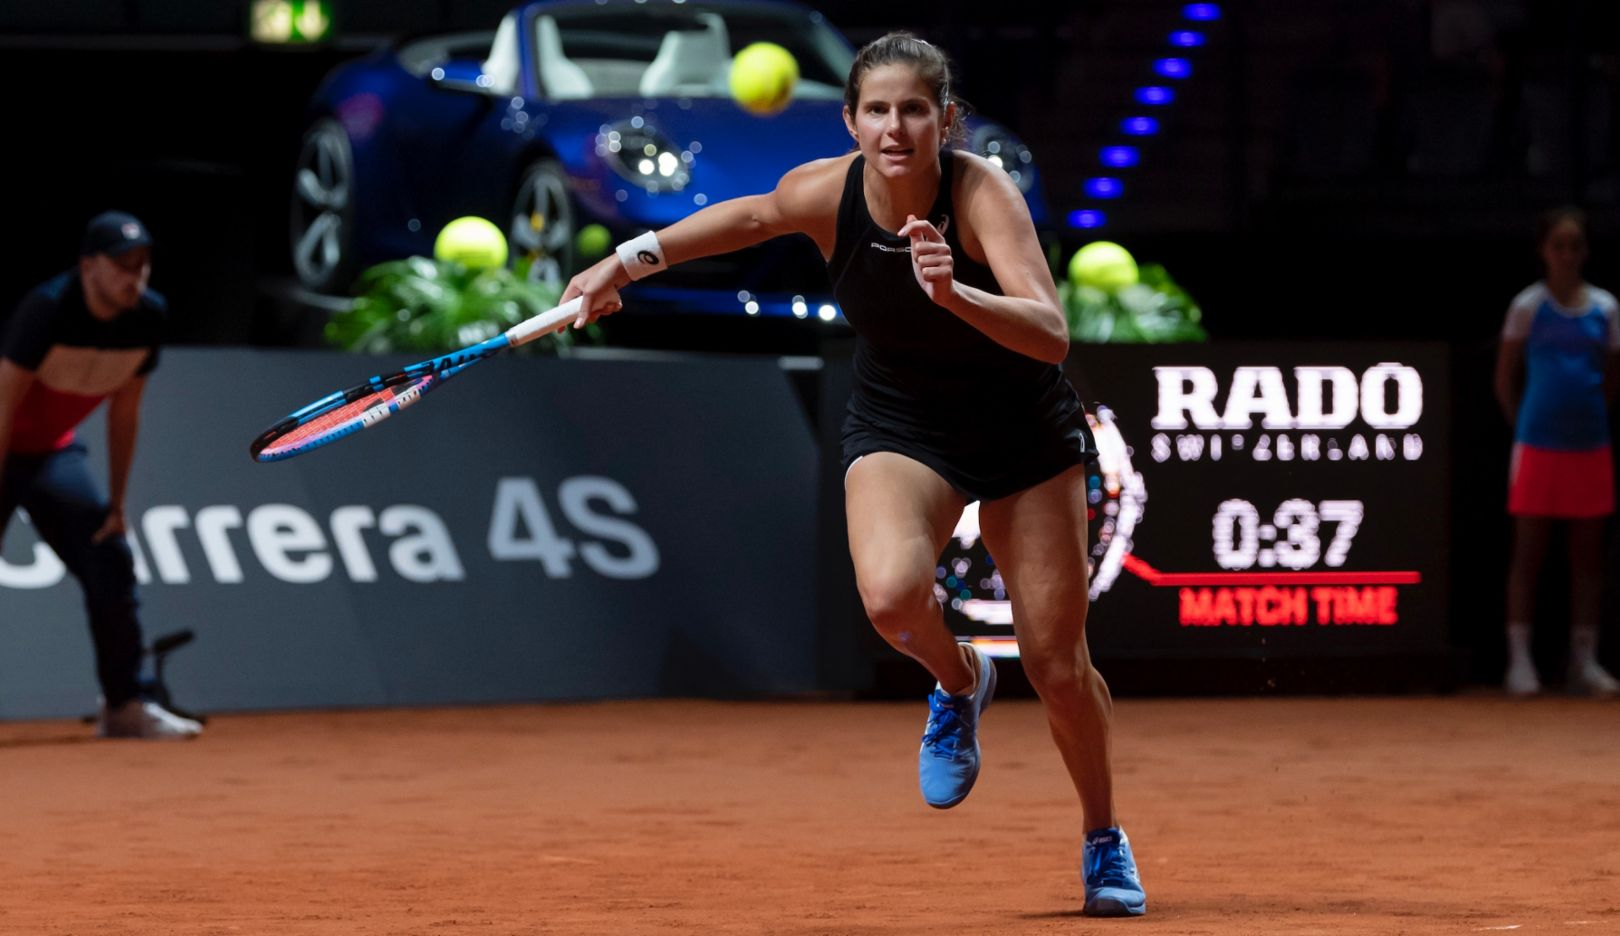 Julia Görges says a quiet goodbye to tennis - Image 4